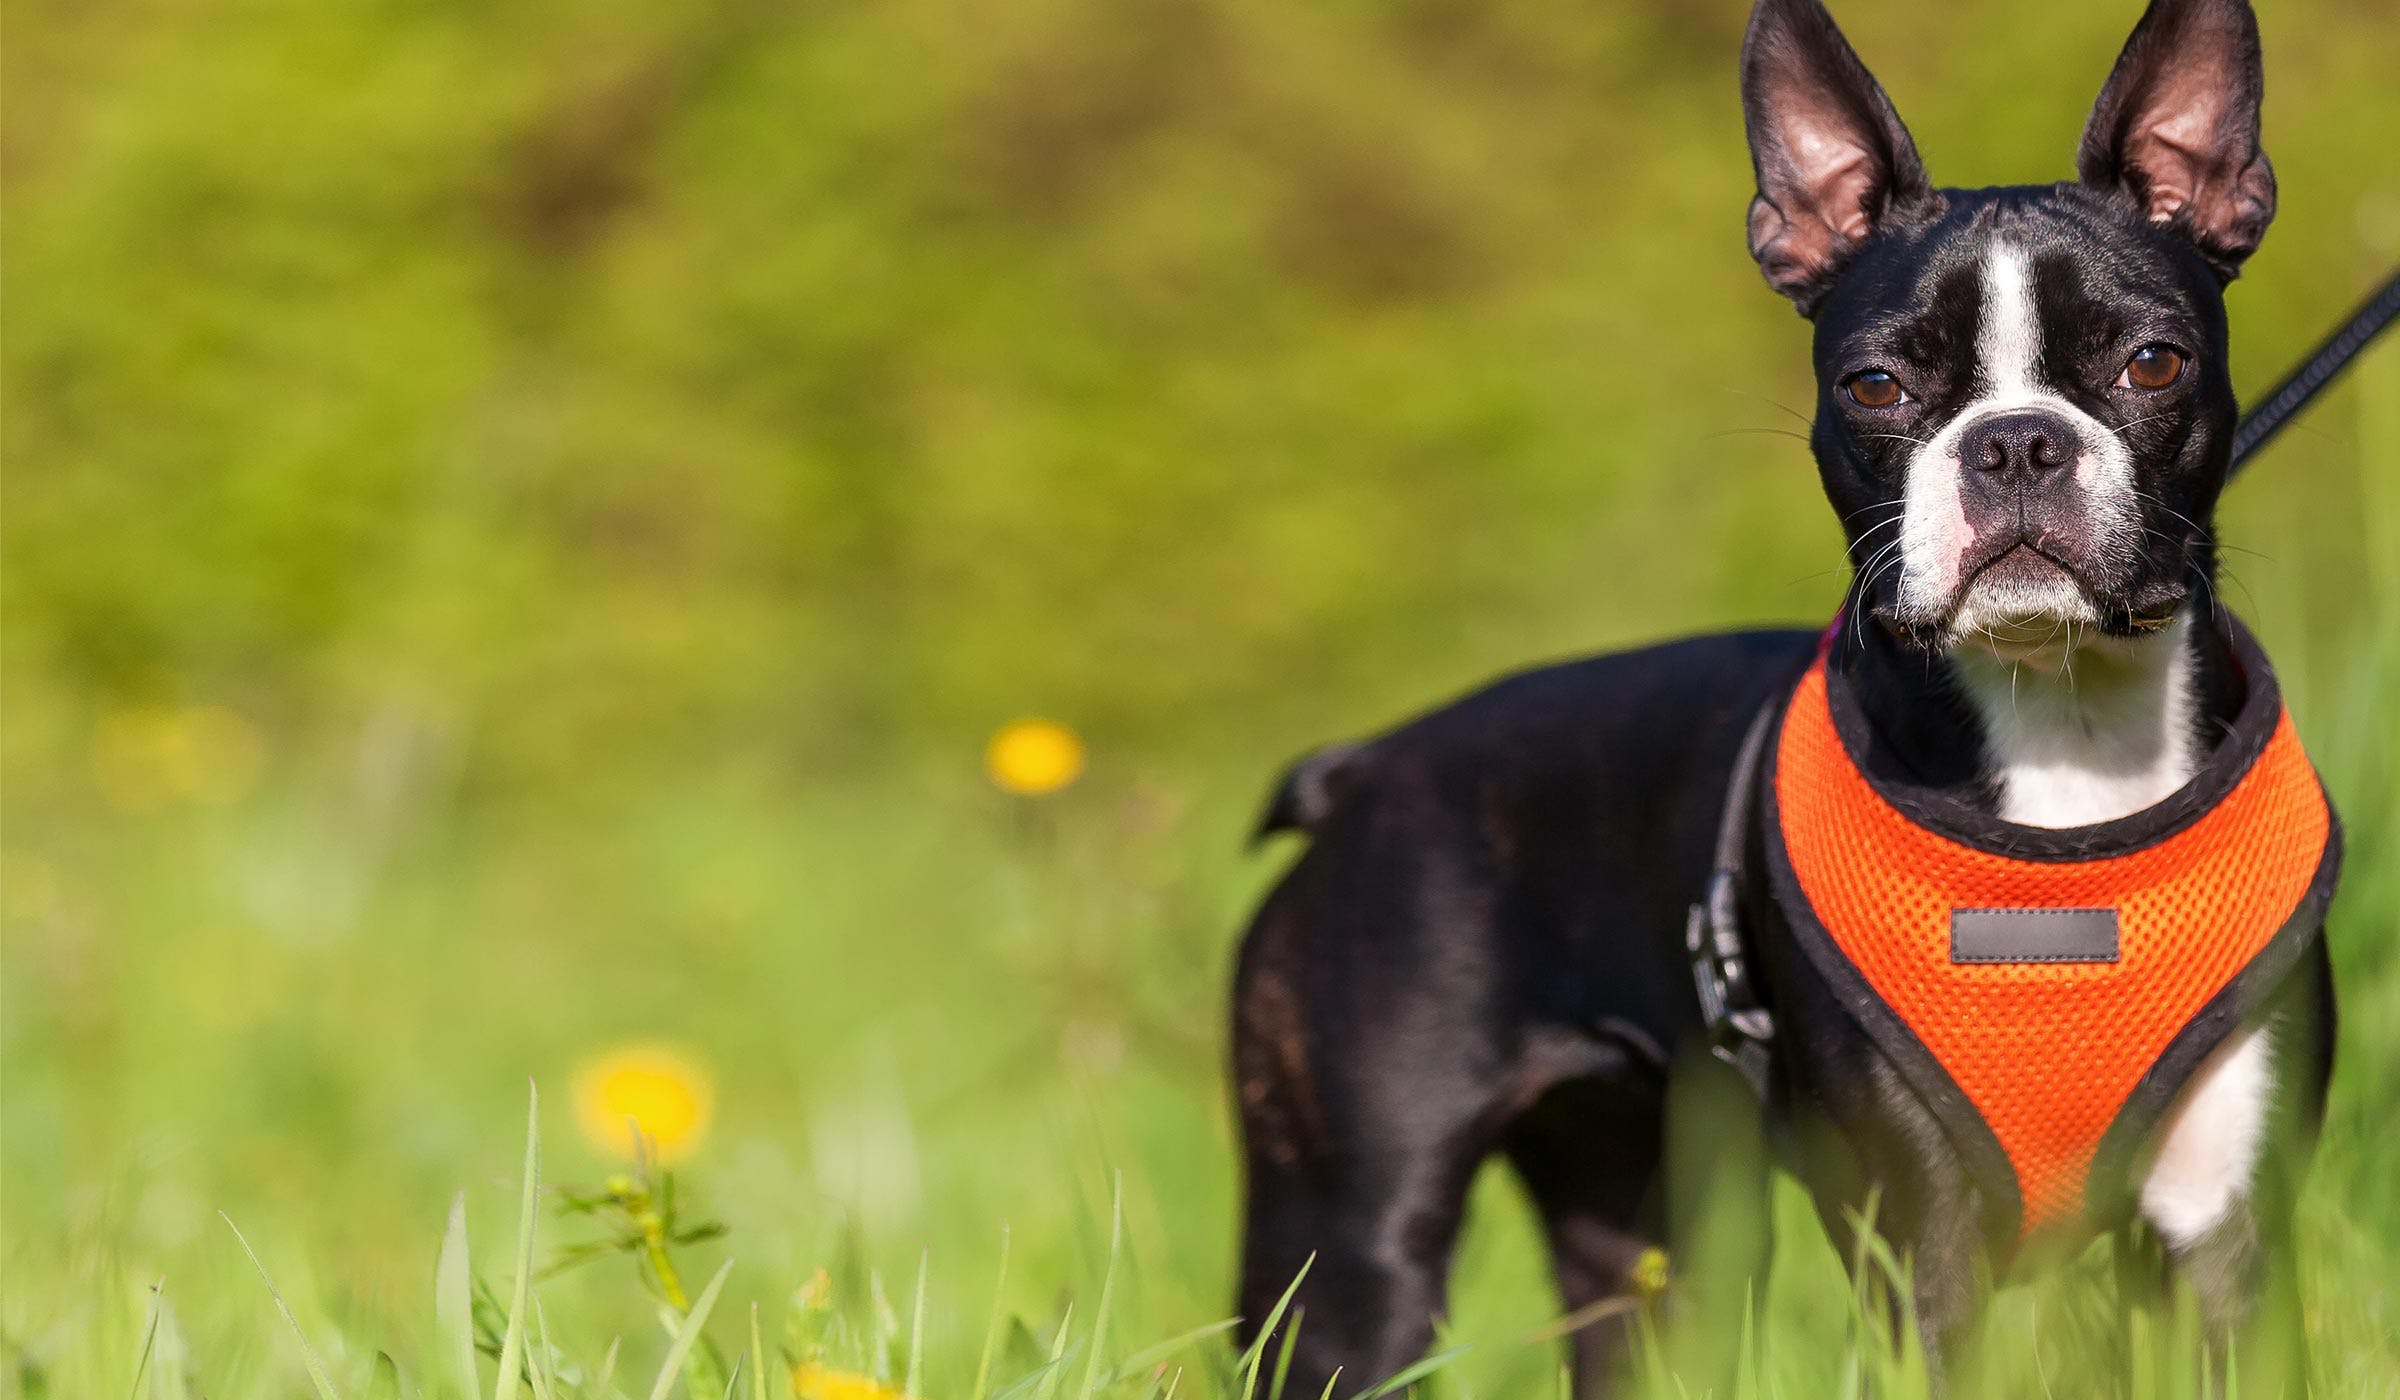 How To Train Your Boston Terrier Dog To Come